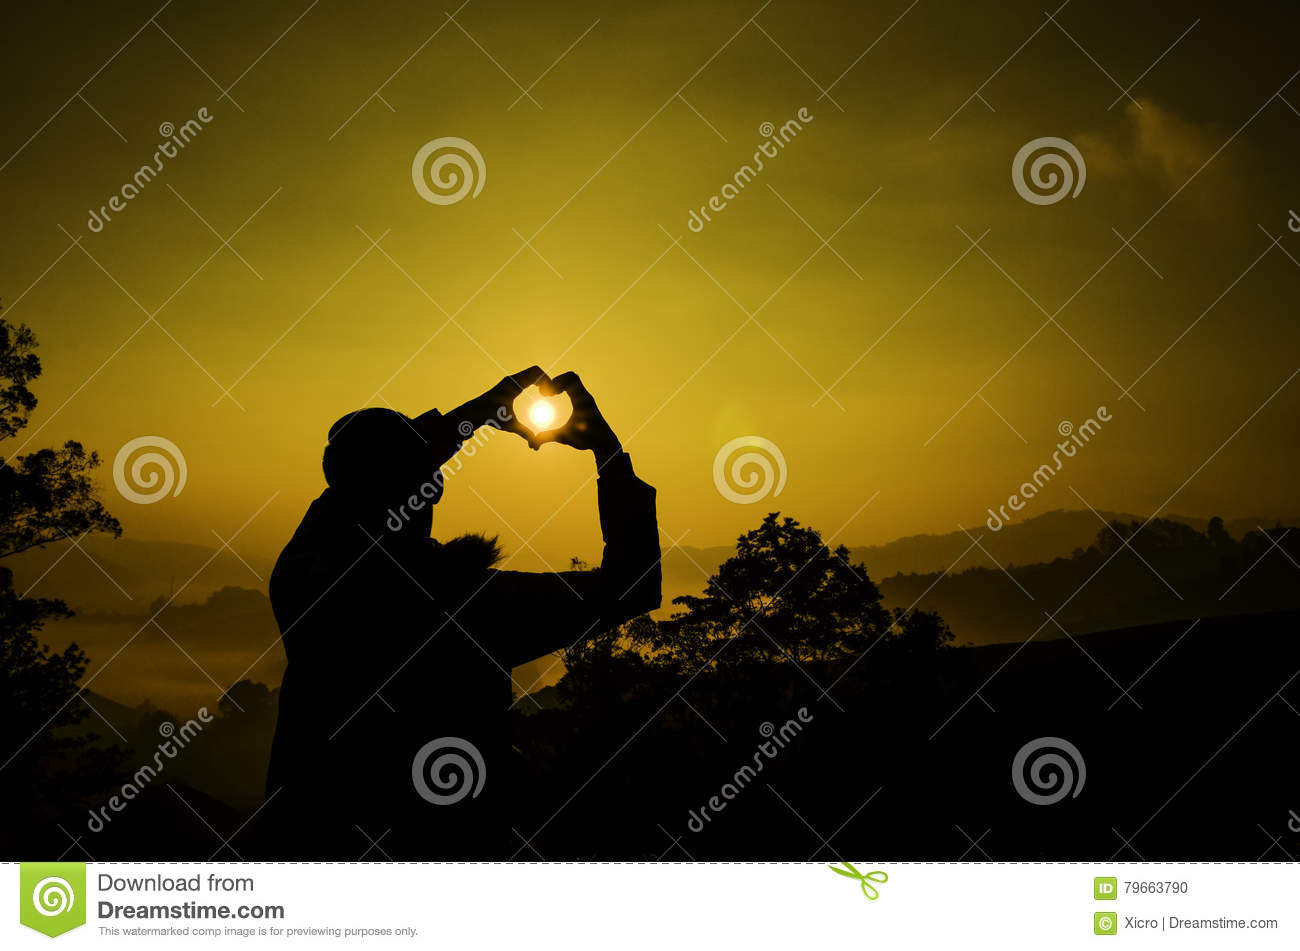 Silhouette Image A Man Create Love Symbol With Hand Stock Photo